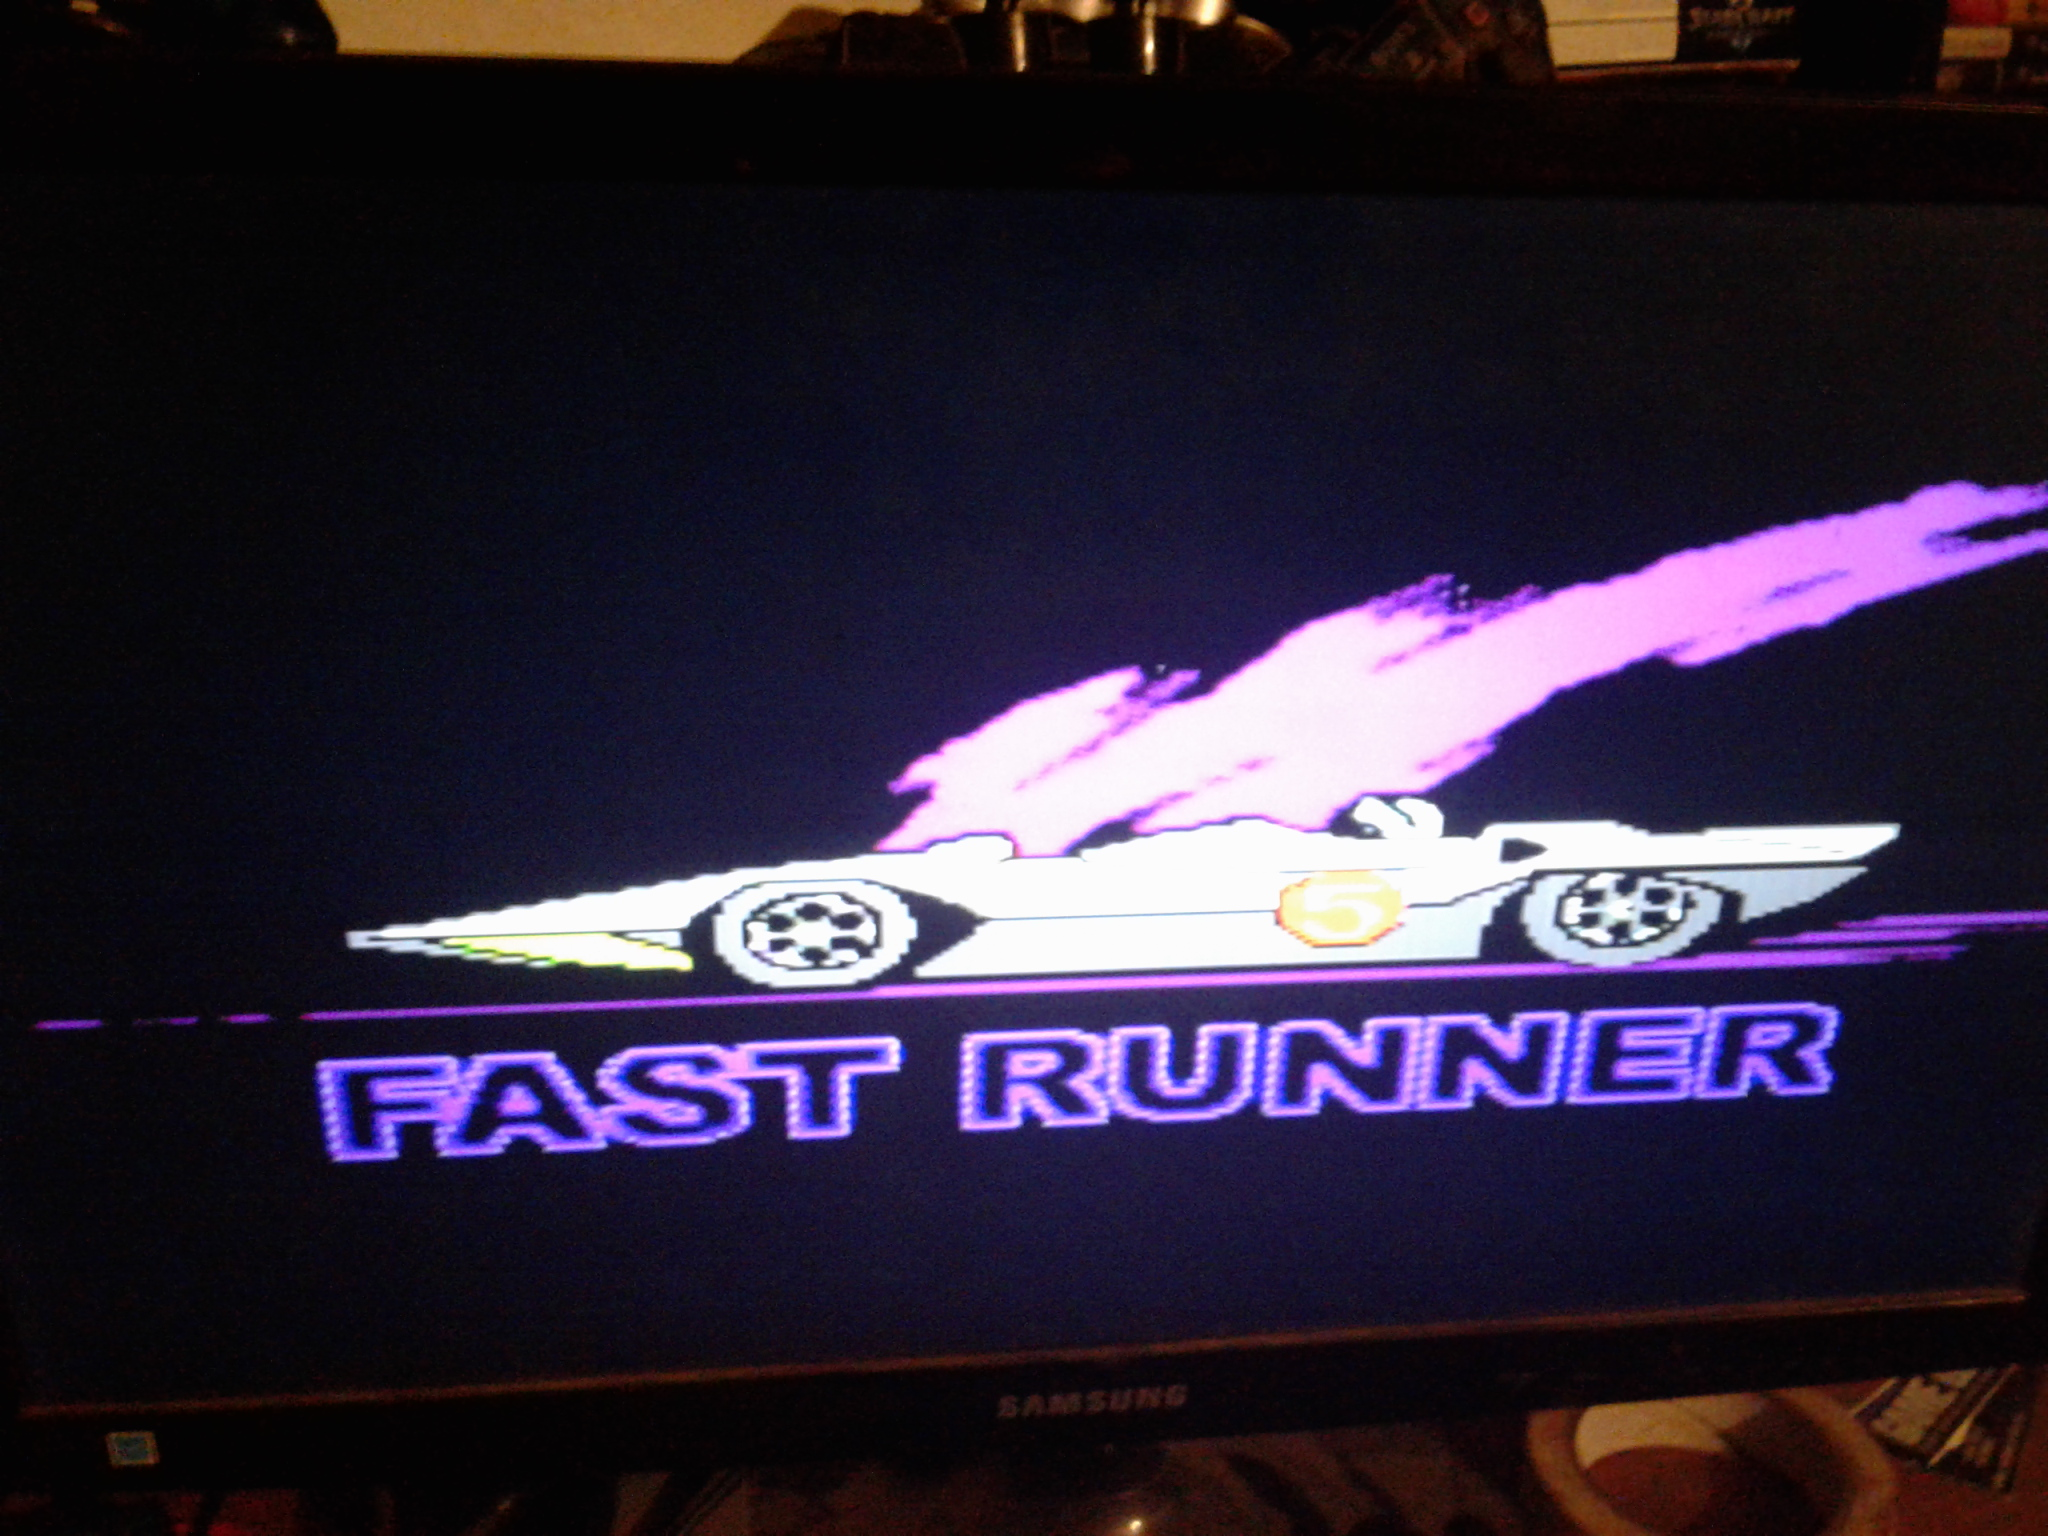 S.BAZ: vsMaxx 50-in-1: Fast Runner (Dedicated Console) 3,815 points on 2019-11-14 14:03:28